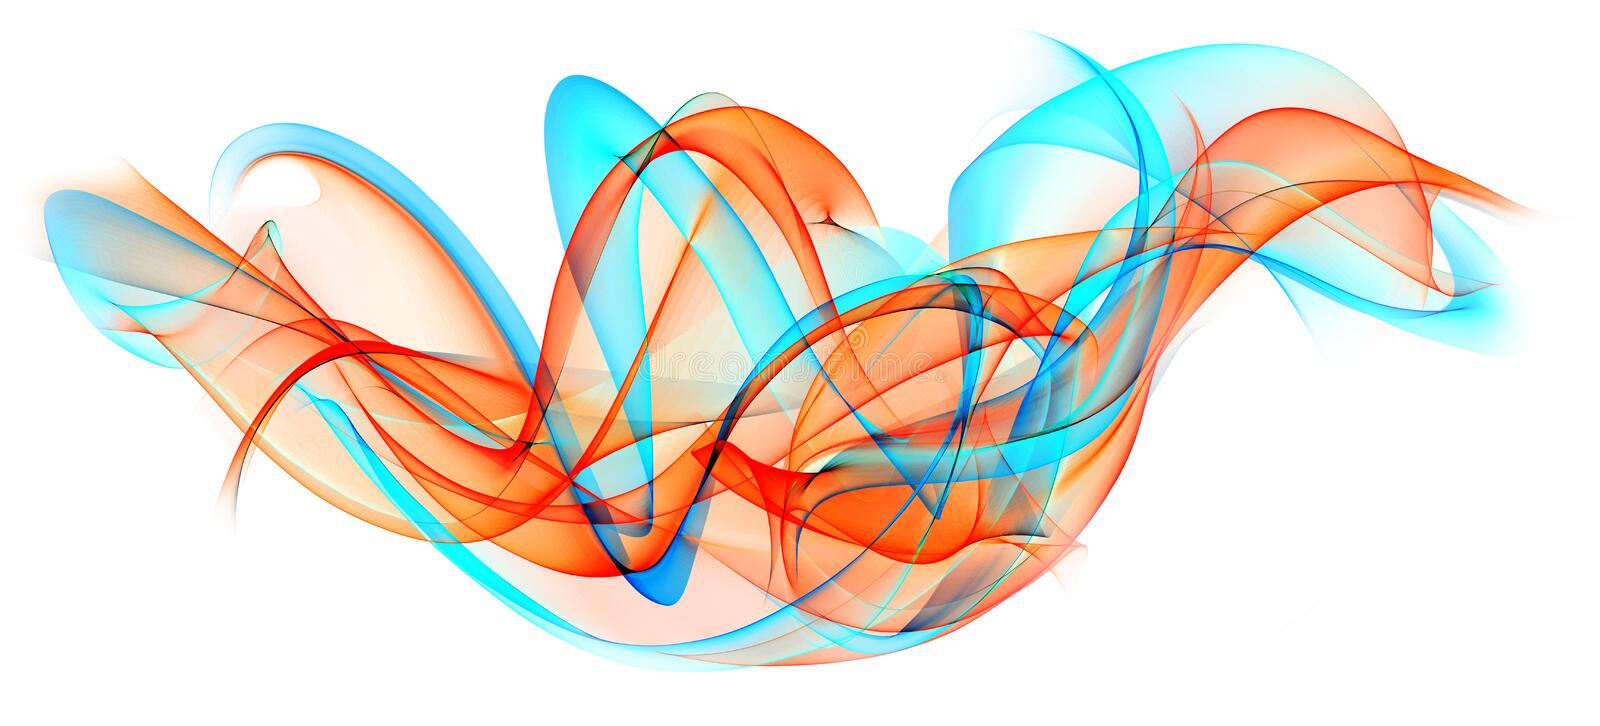 Abstract modern flame backgrounds royalty free stock photos